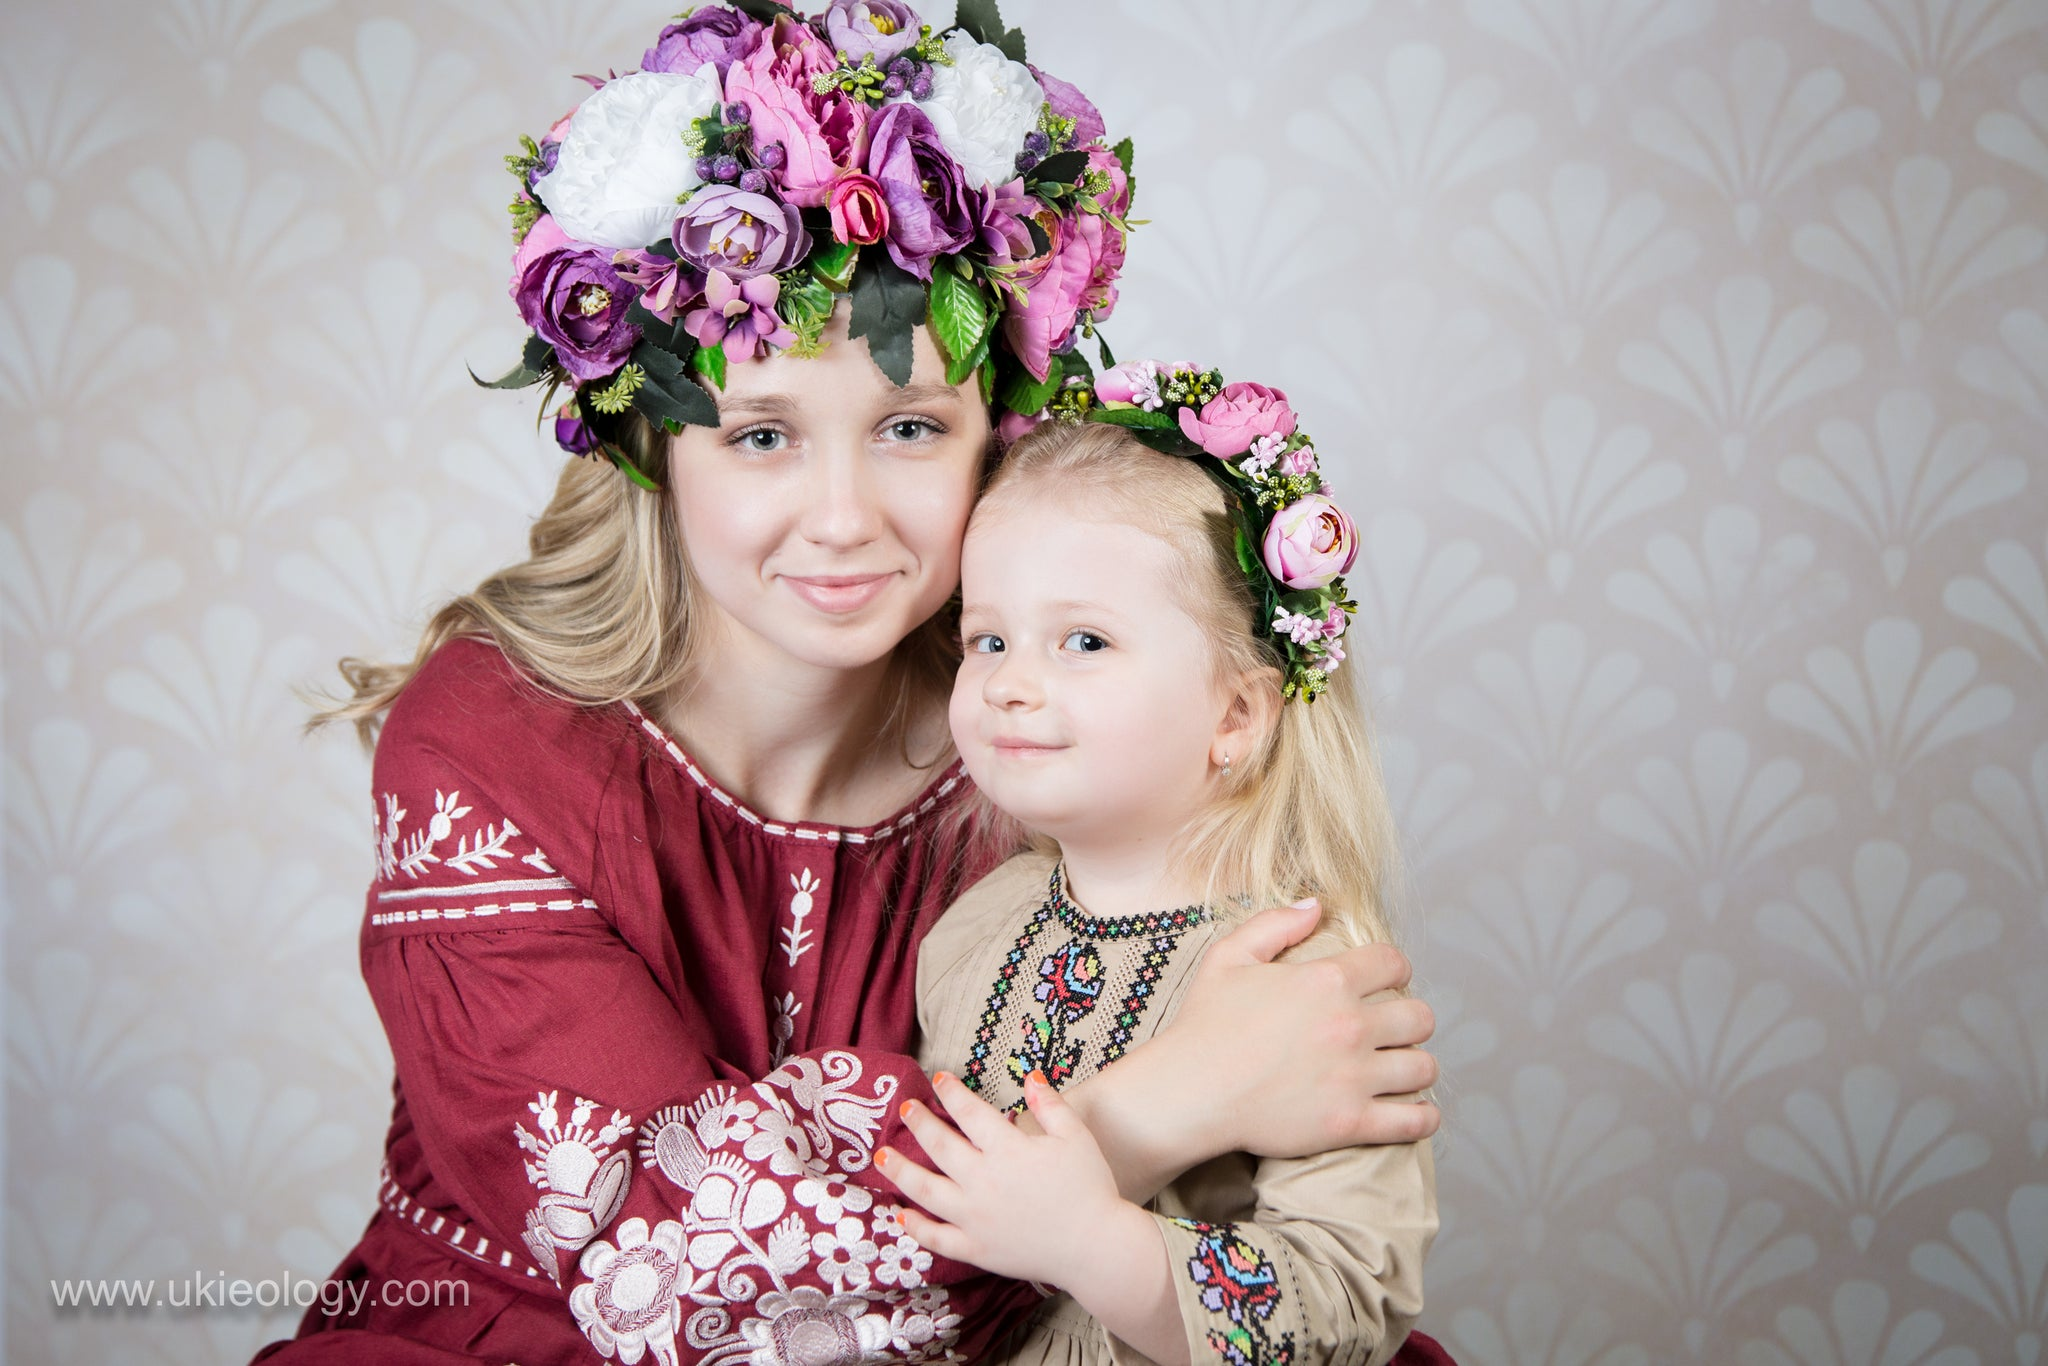 Ukrainian Vinok - when beauty and tradition intertwine